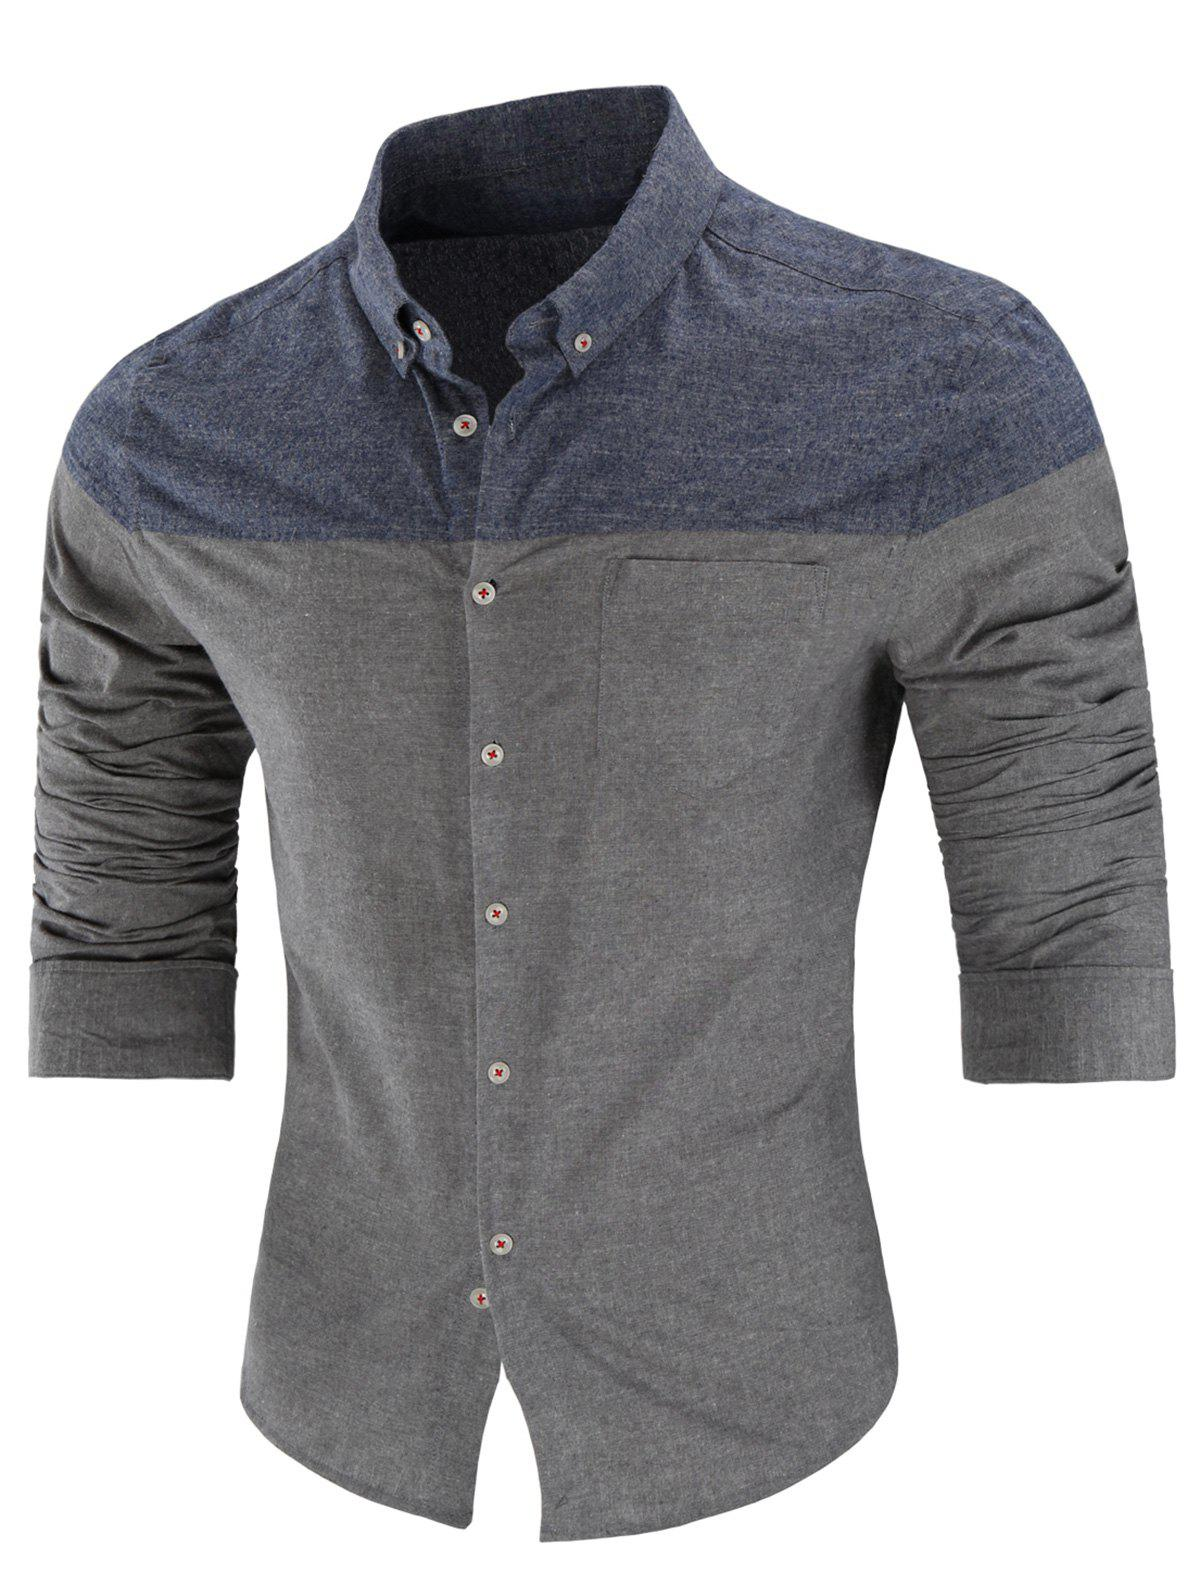 Store Long Sleeve Two Tone Button Down Shirt